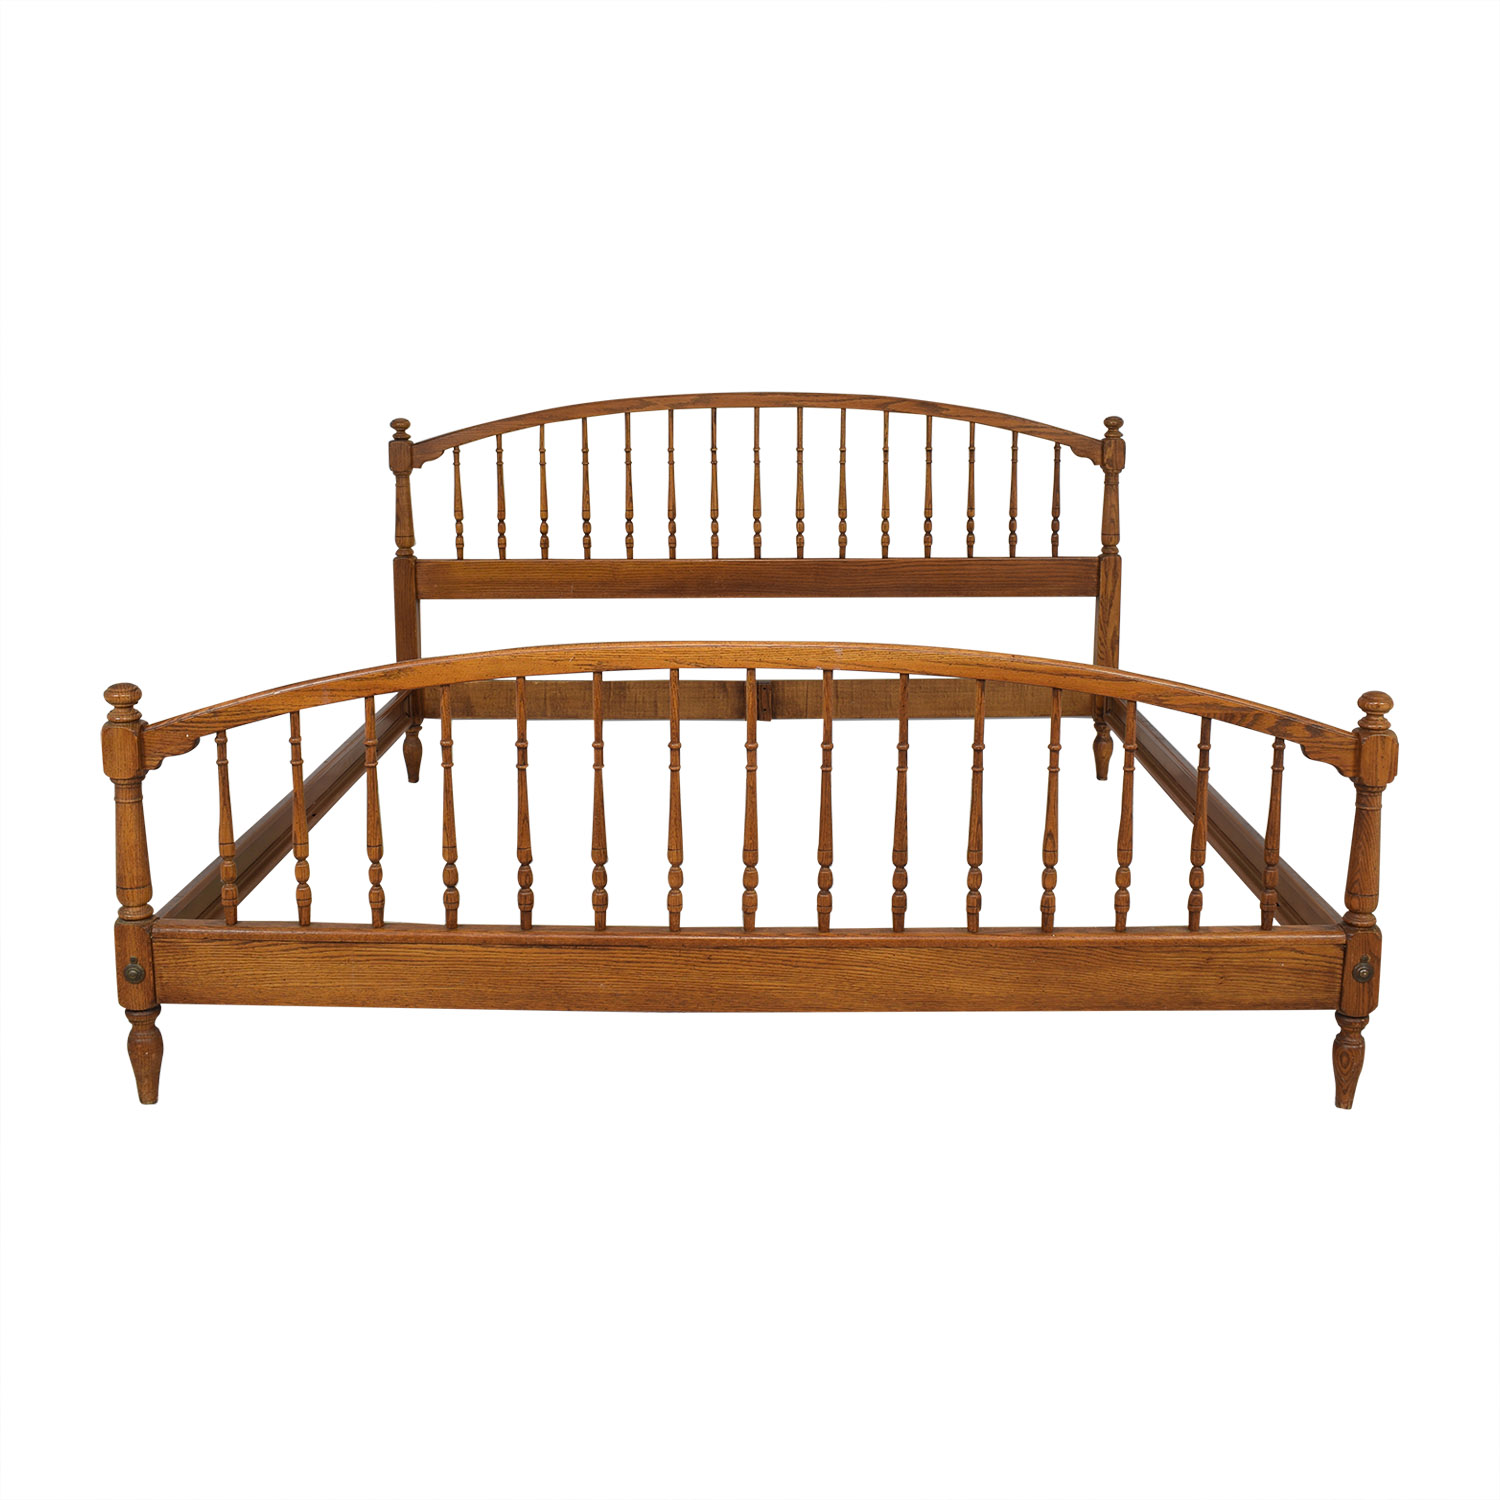 Knob Creek Knob Creek Spindle King Bed Frame coupon